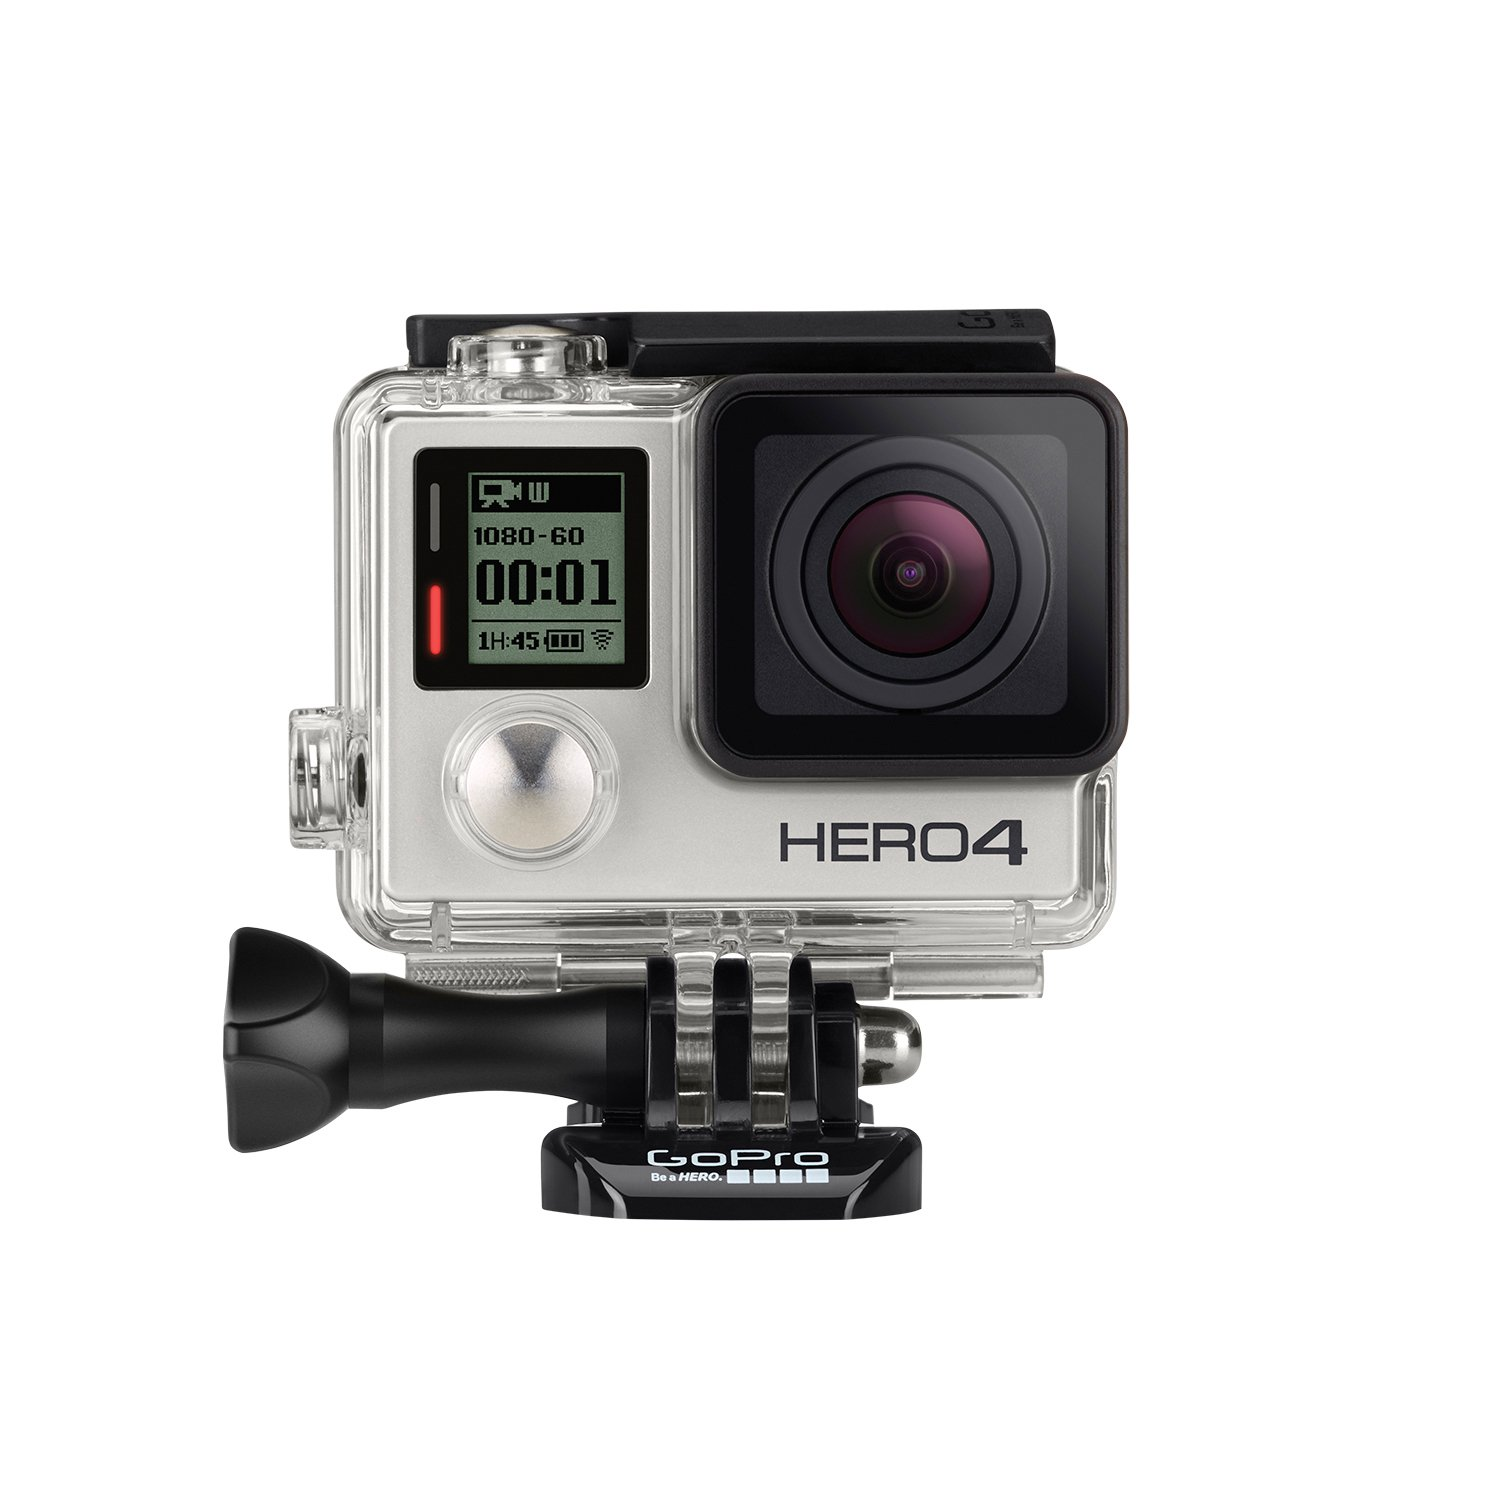 dc80d1d9 Amazon.com : GoPro HERO4 Silver : Camera & Photo